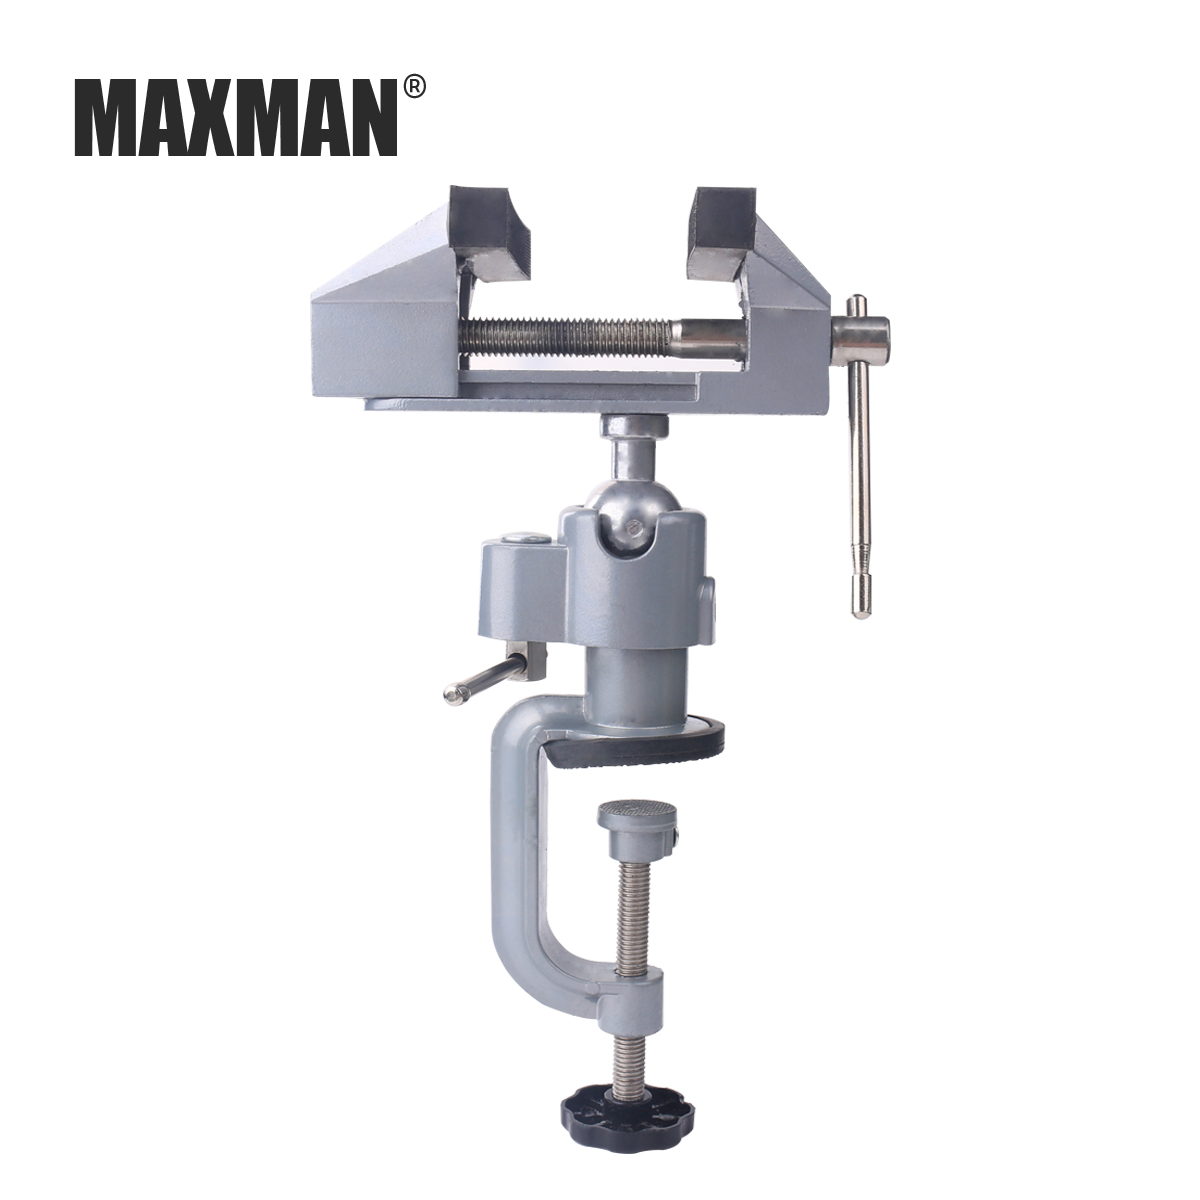 MAXMAN Bench Vise Aluminum 75mm Table Screw Vise Bench Clamp Screw Vise for DIY Craft Mold Fixed Repair Tool free shipping aluminum alloy table vice mini bench vise diy tools swivel lock clamp vice craft jewelry hobby vise jaw width 40mm